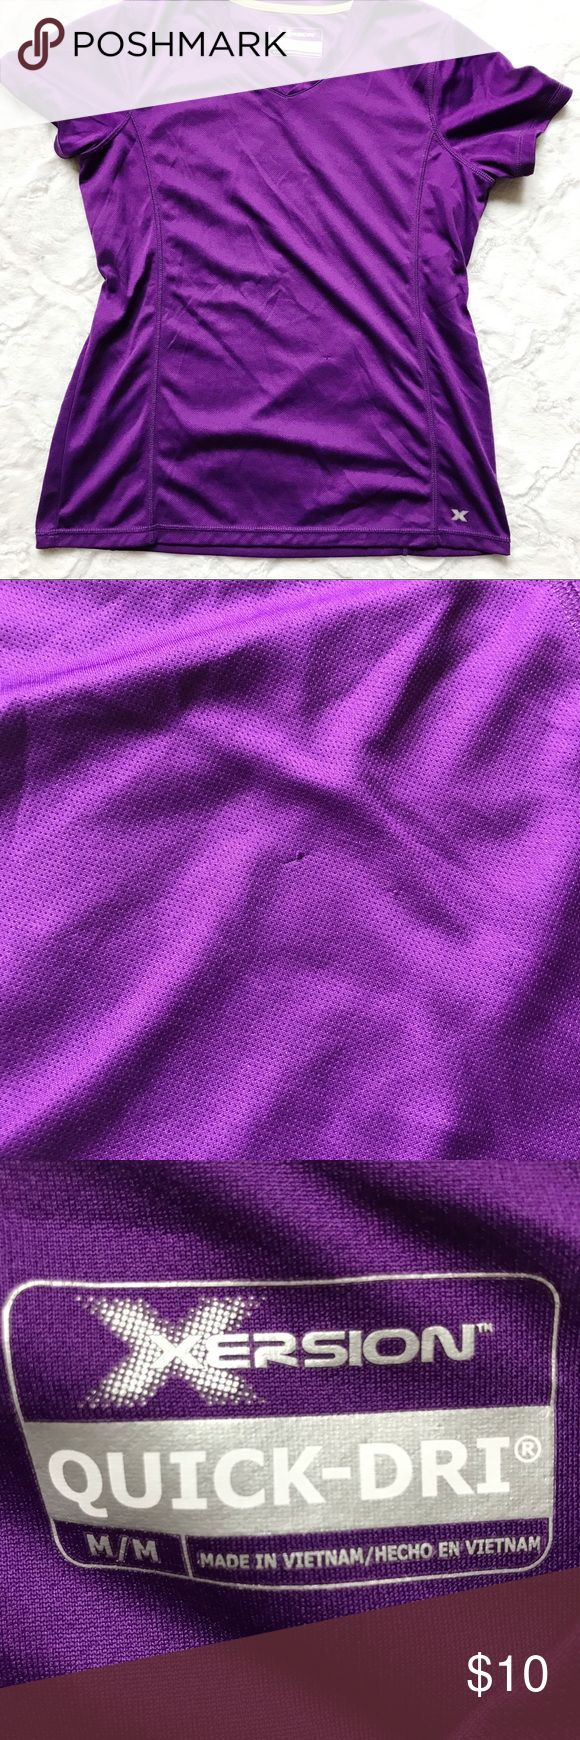 Xersion quick dry short sleeve top Short sleeve purple top from Xersion. Great purple color in excellent condition. One small pull on front as shown in pictures. Size M Xersion Tops